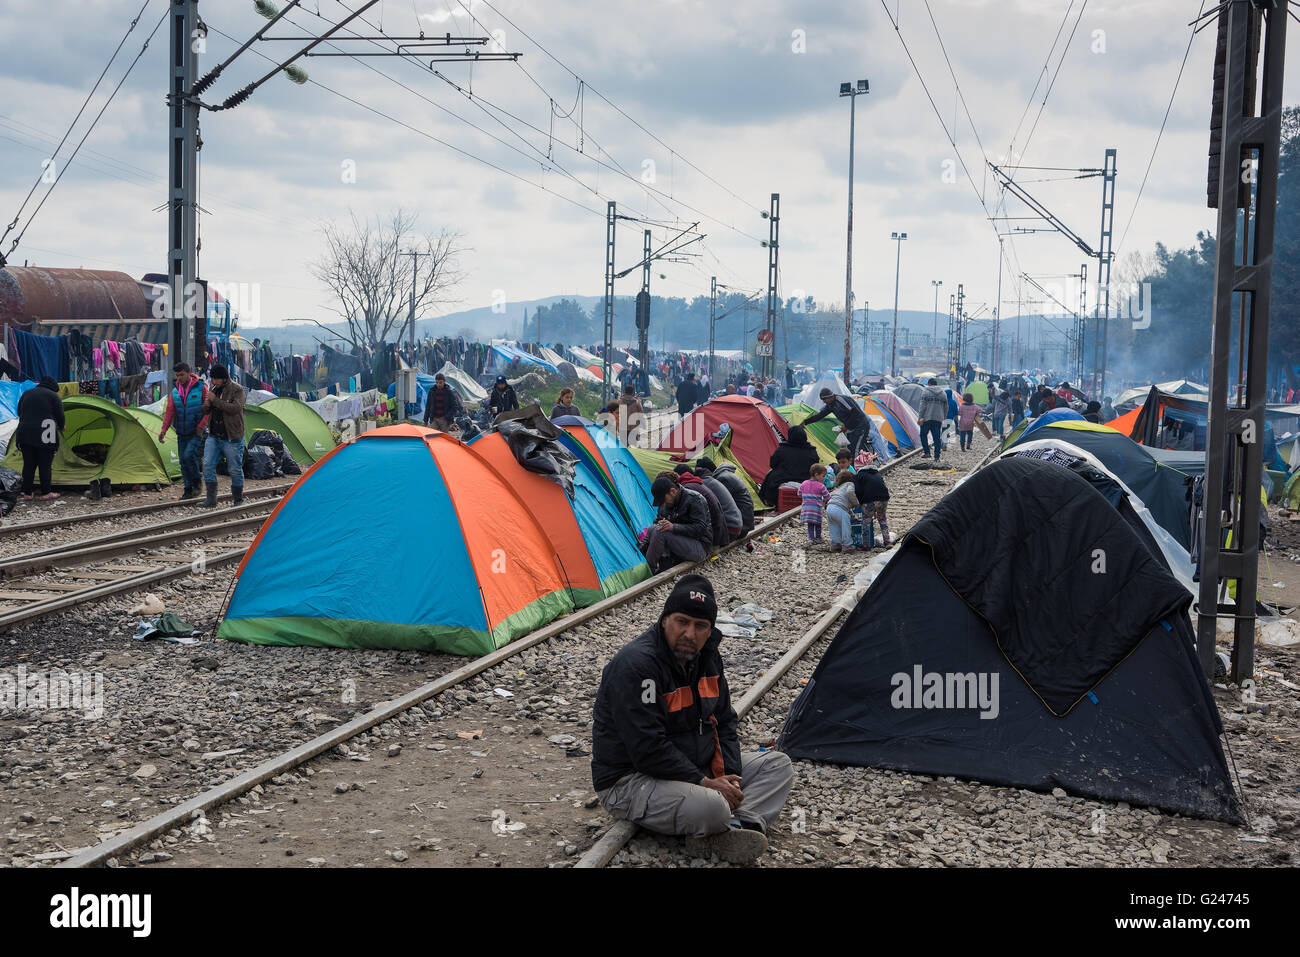 Refugees from Syria sit by their tents on March 17, 2015 in the refugee camp of Idomeni, Greece. - Stock Image